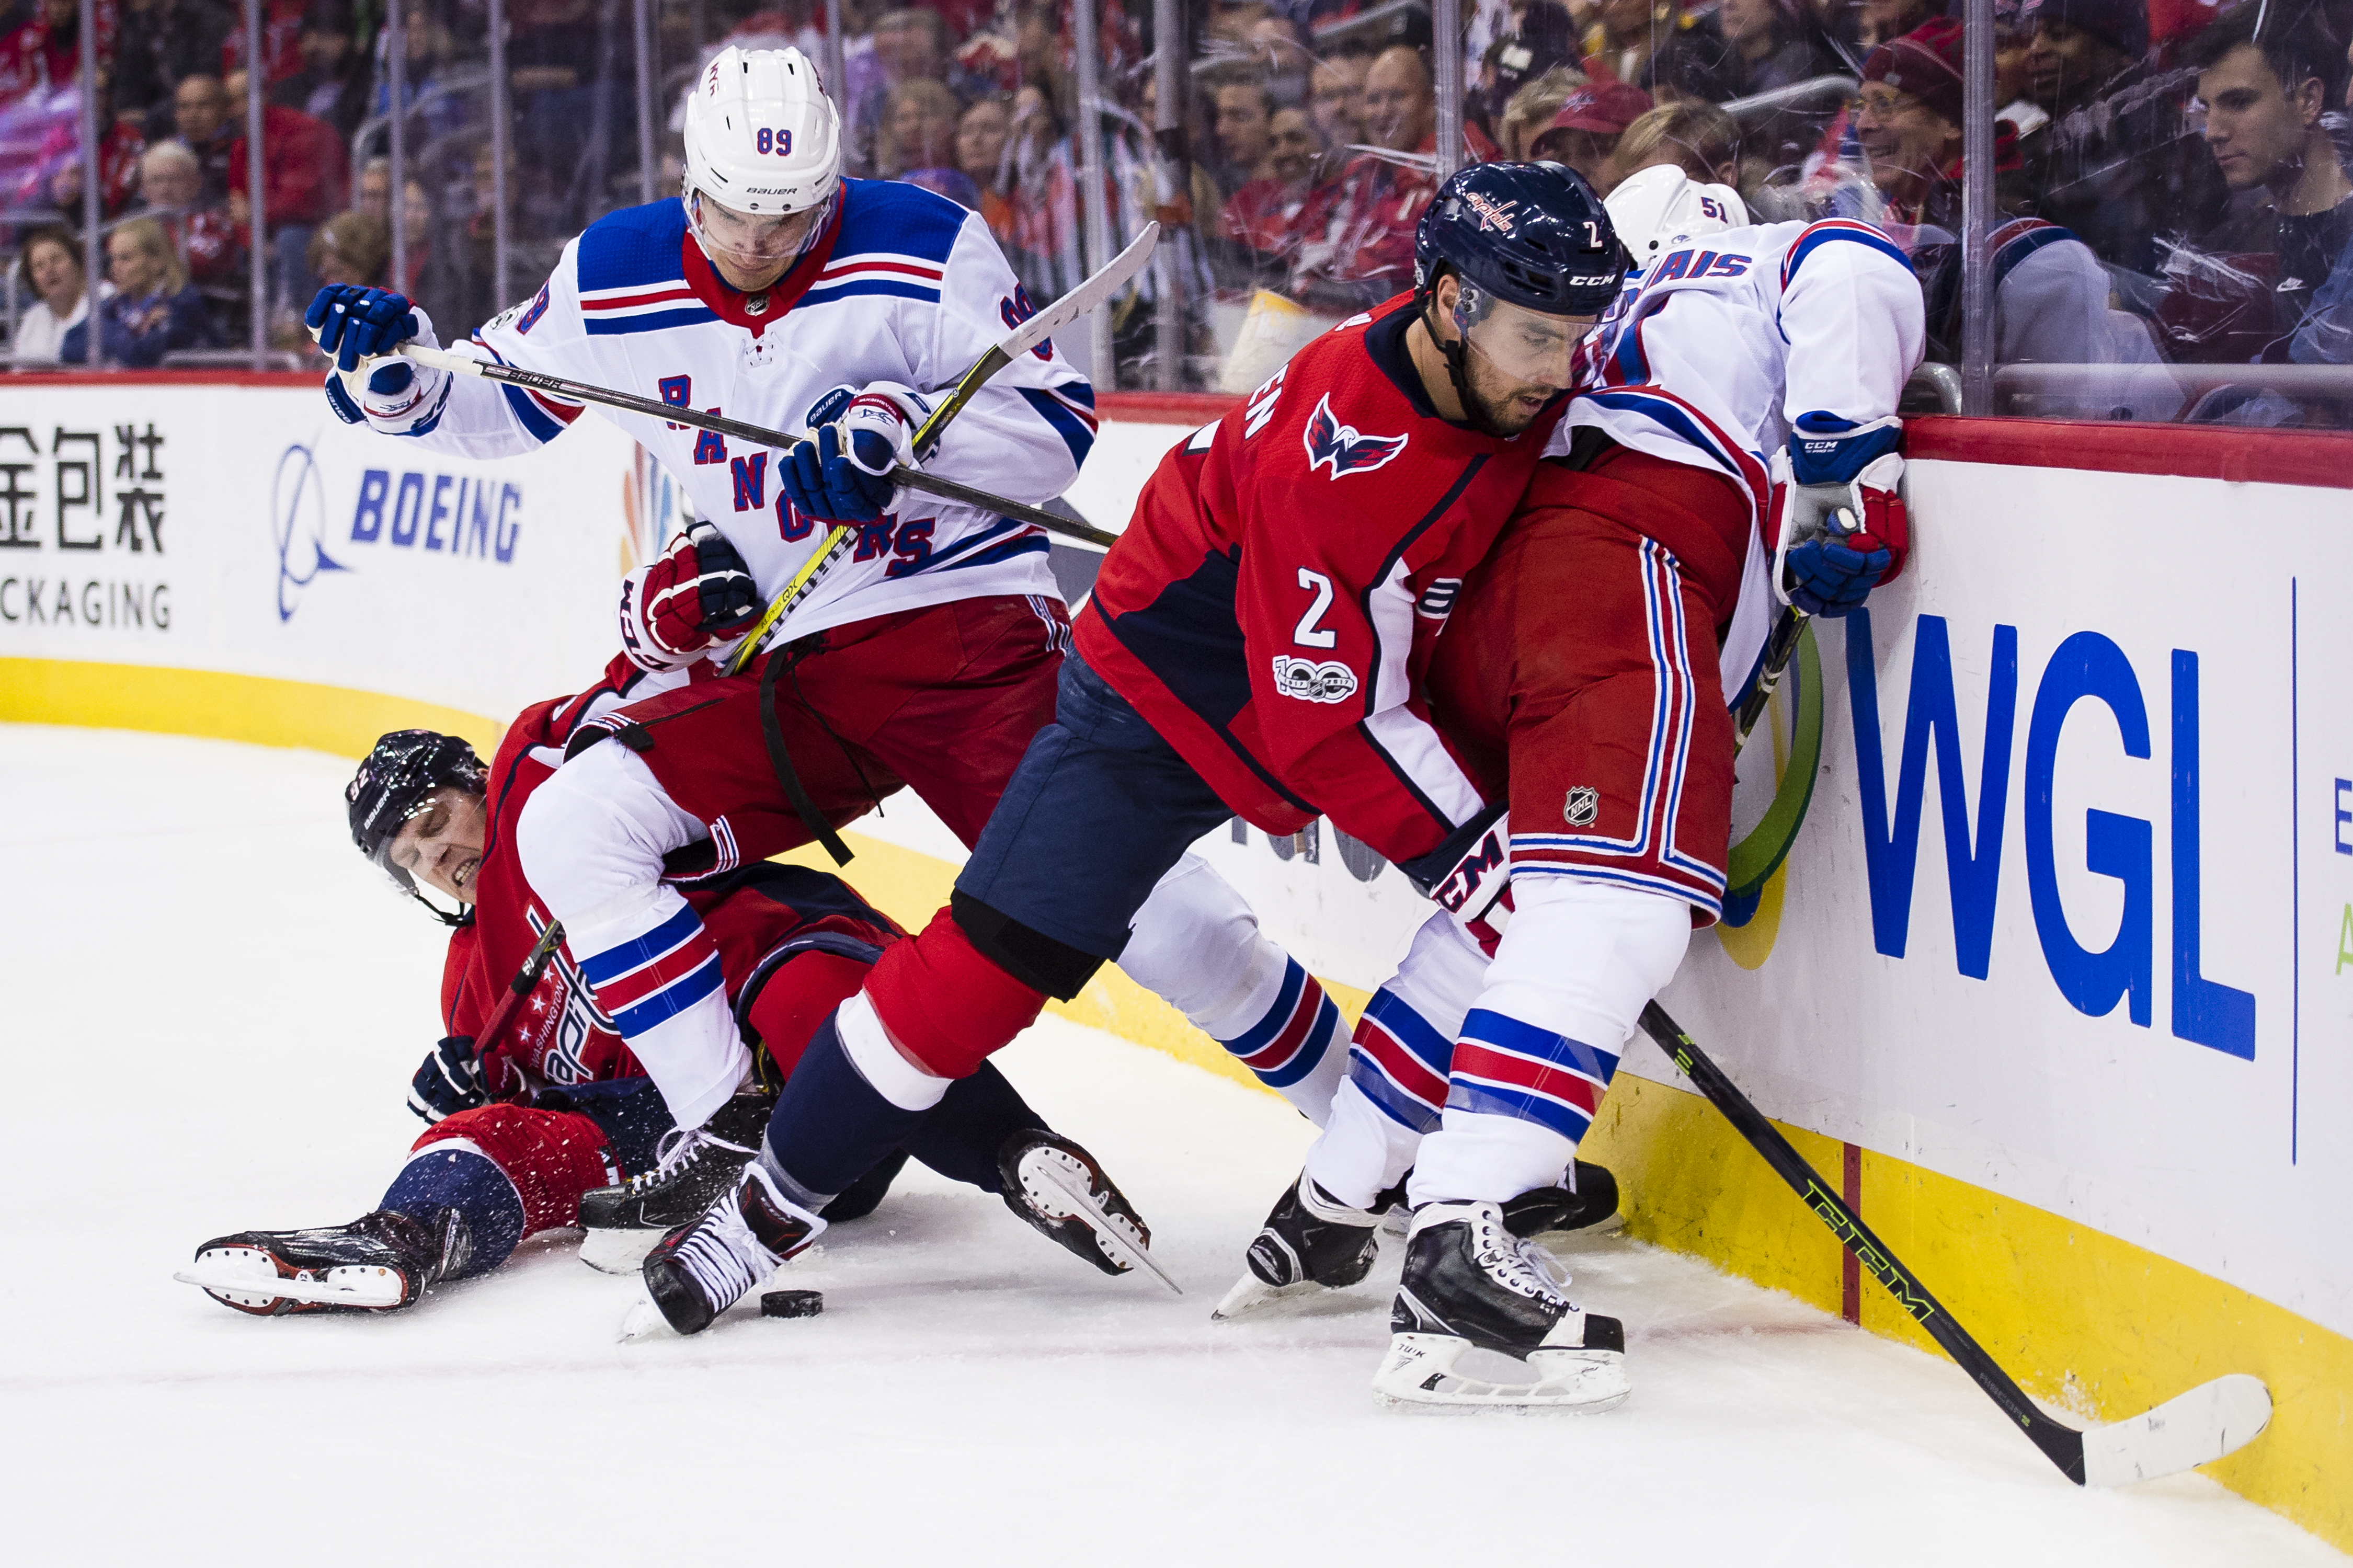 Rangers beat Capitals in shootout to win battle of backup goalies